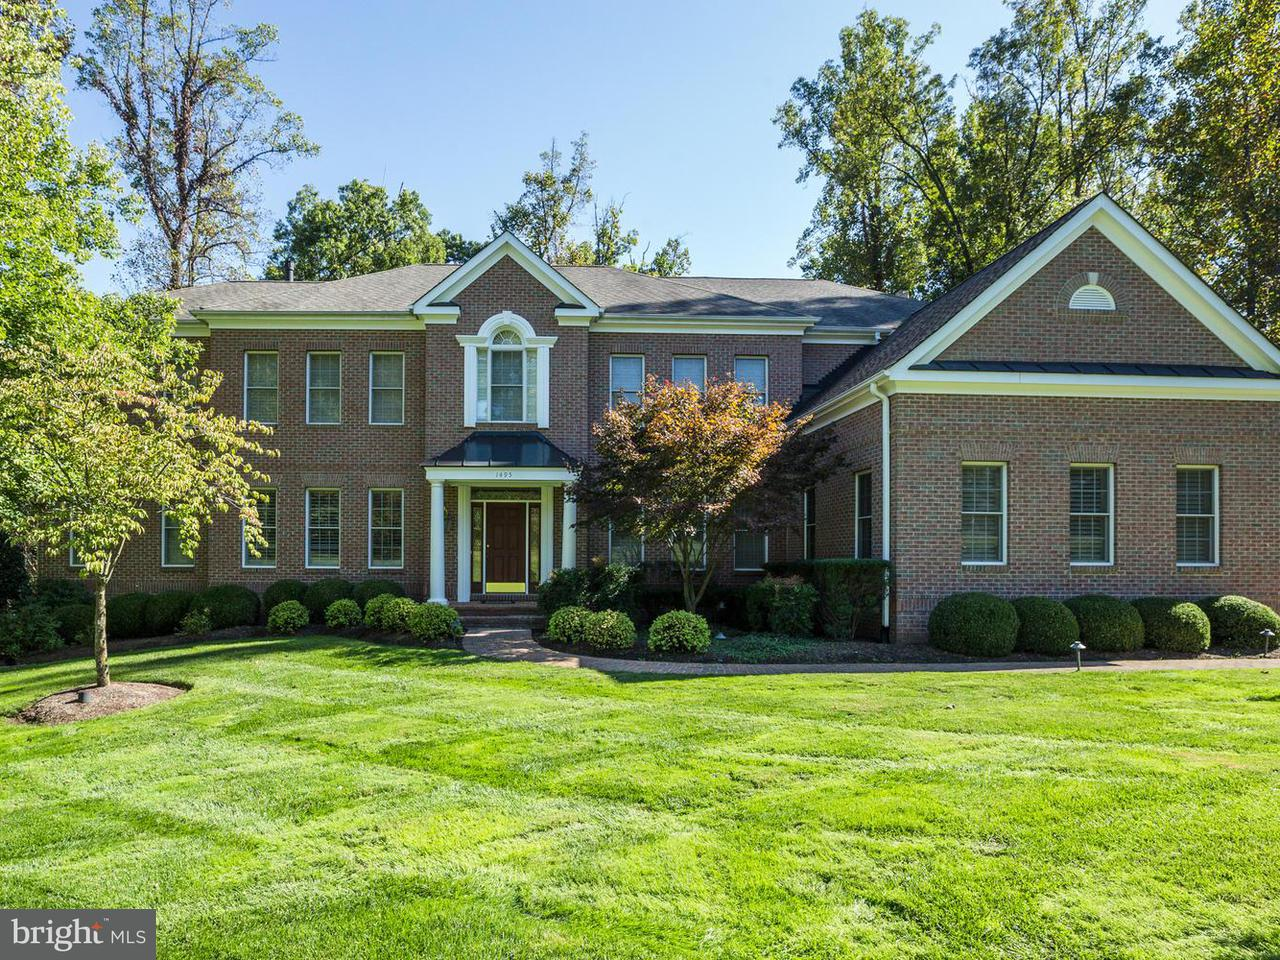 Single Family Home for Sale at 1495 Lily Loch Way 1495 Lily Loch Way Great Falls, Virginia 22066 United States